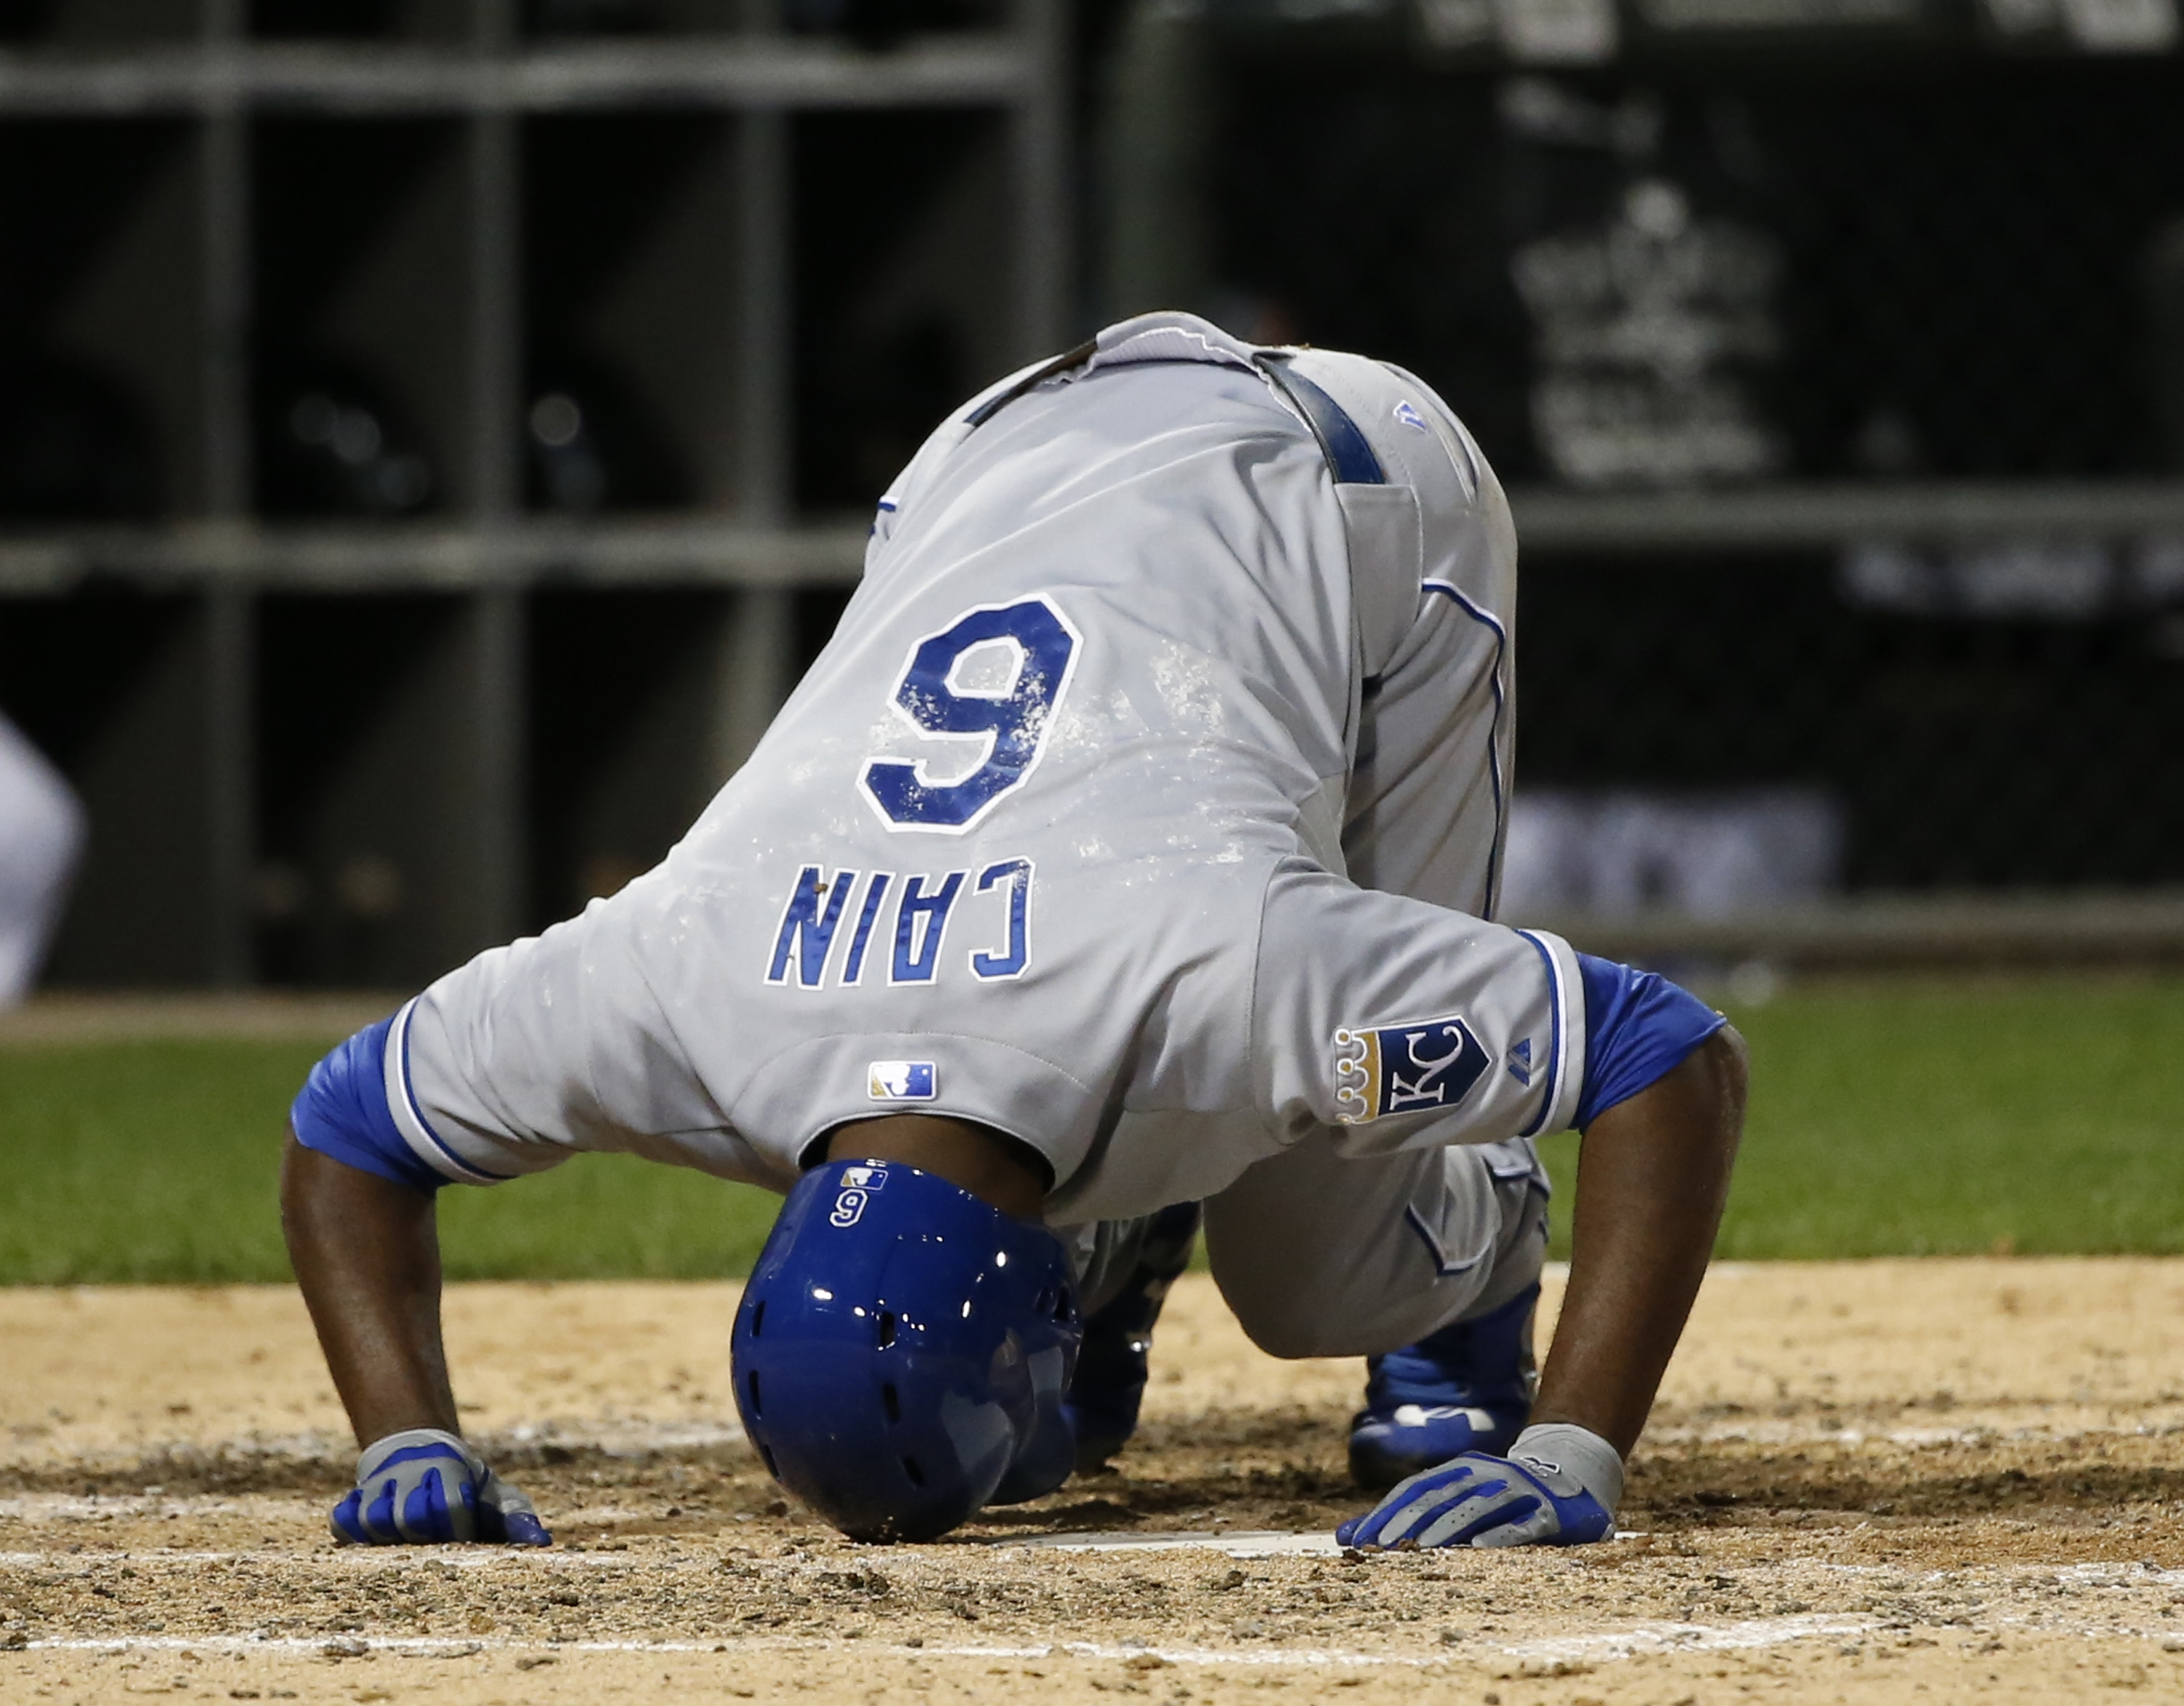 Kansas City Royals' Lorenzo Cain kneels on the ground after fouling a pitch from Chicago White Sox starting pitcher Jose Quintana during the seventh inning of a baseball game Wednesday, Sept. 30, 2015, in Chicago. (AP Photo/Charles Rex Arbogast)